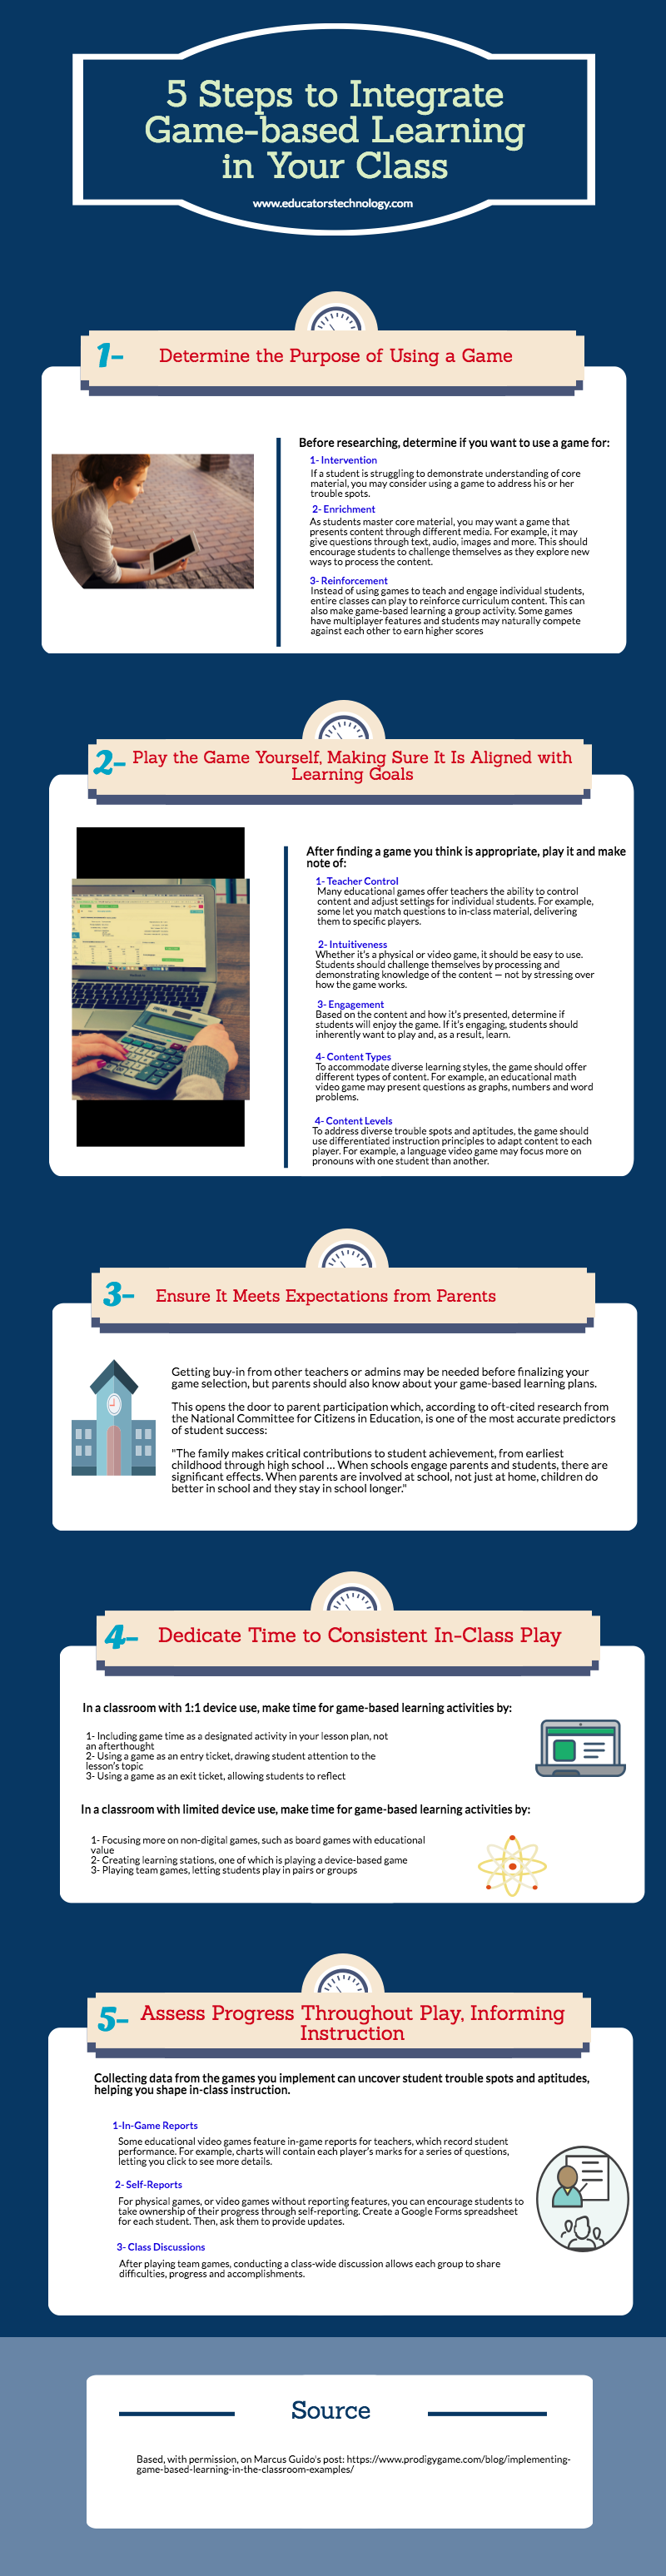 An infographic that explores five steps to introducing game-based learning into a classroom.